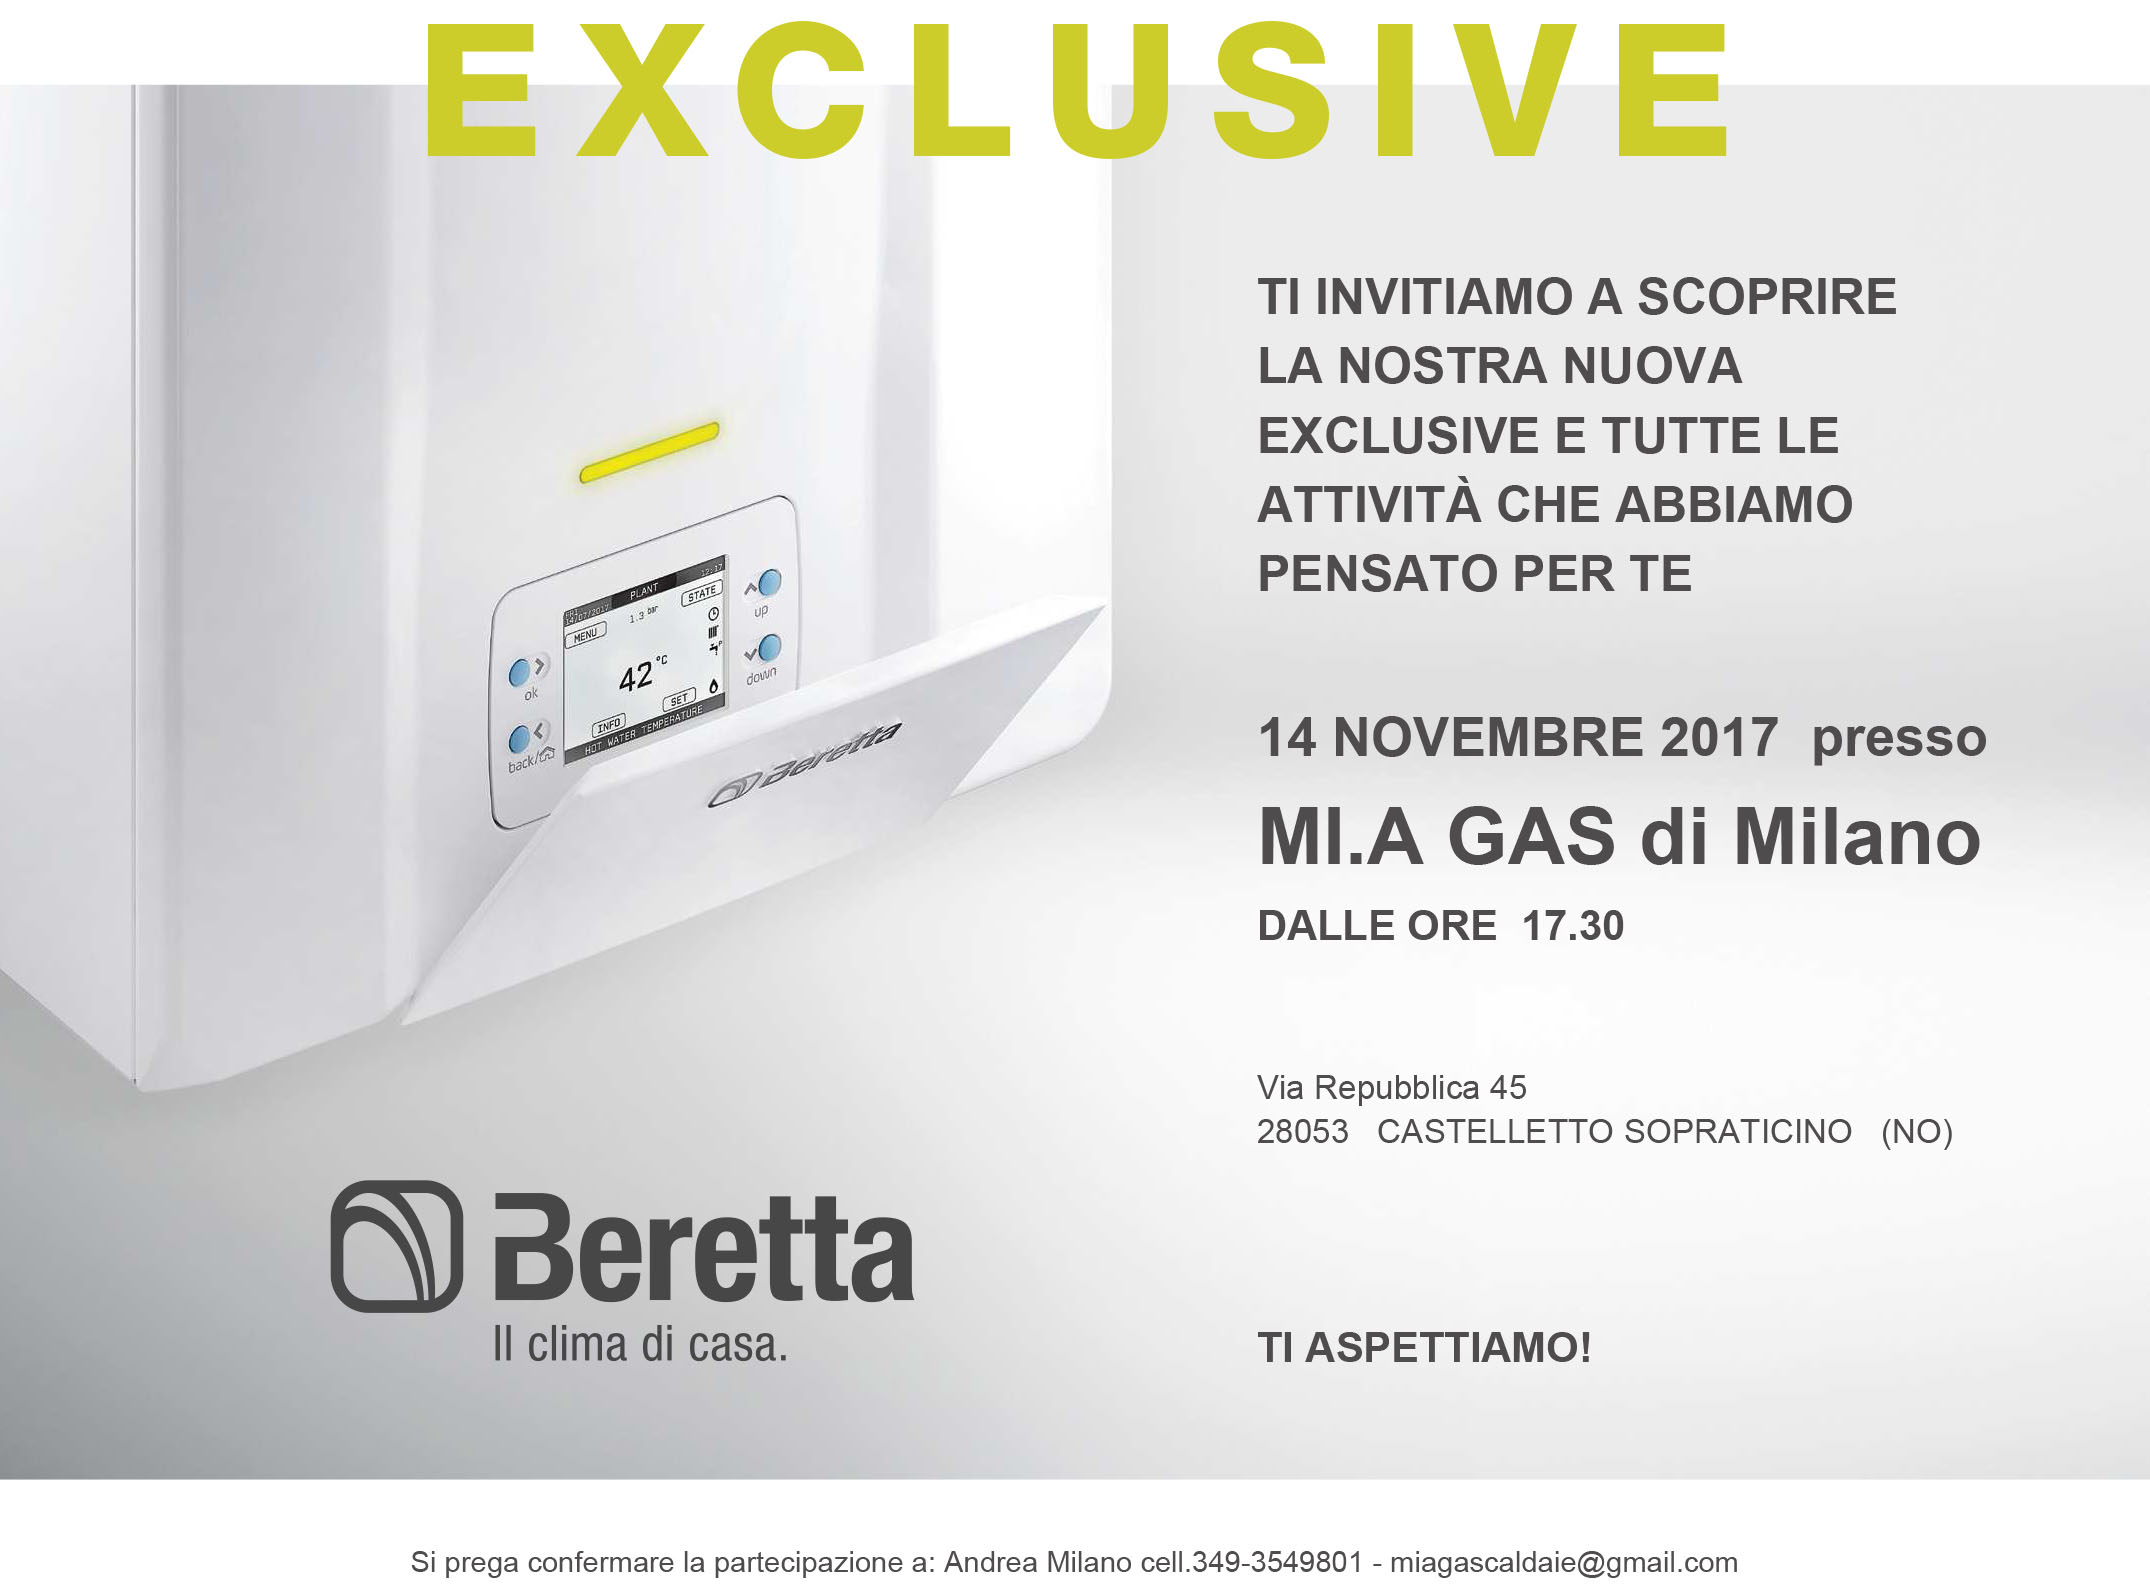 Beretta_Exclusive_Invito MIA GAS